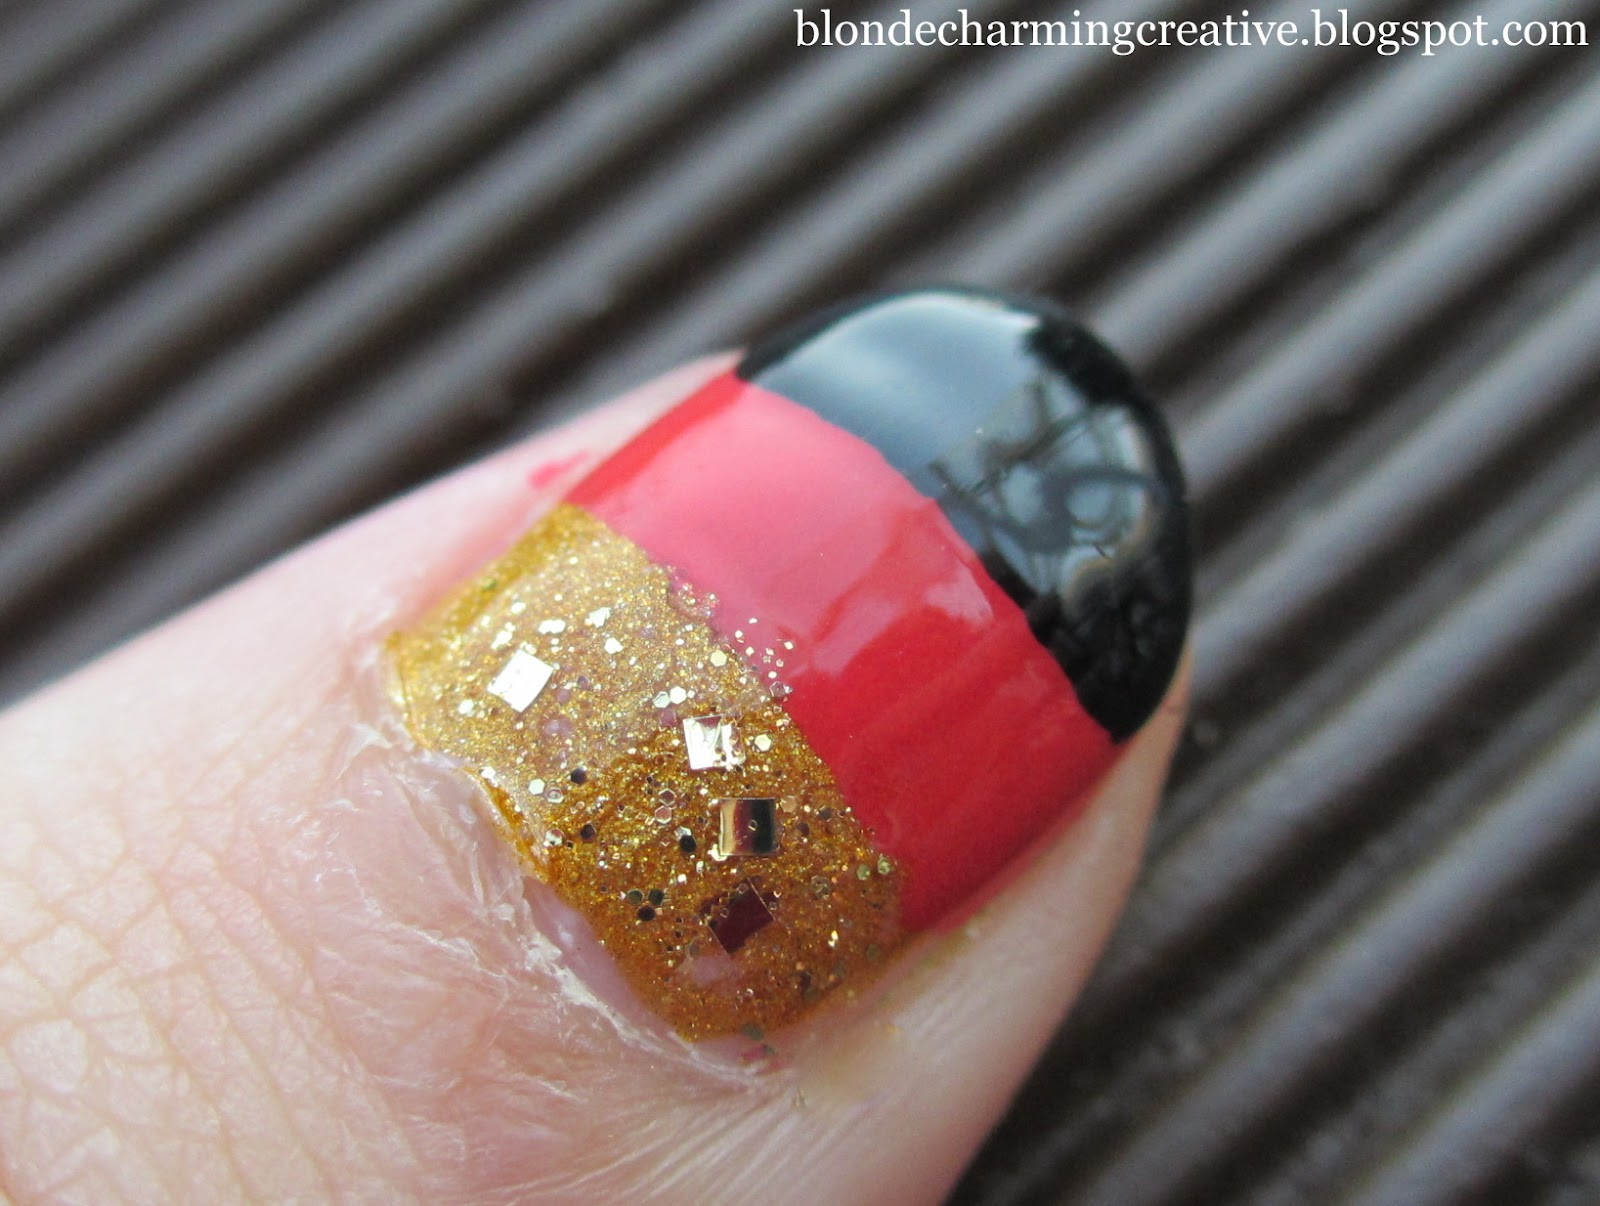 Attraktiv Nageldesign Rot Beste Wahl Schwarz Gold - Nageldesign.